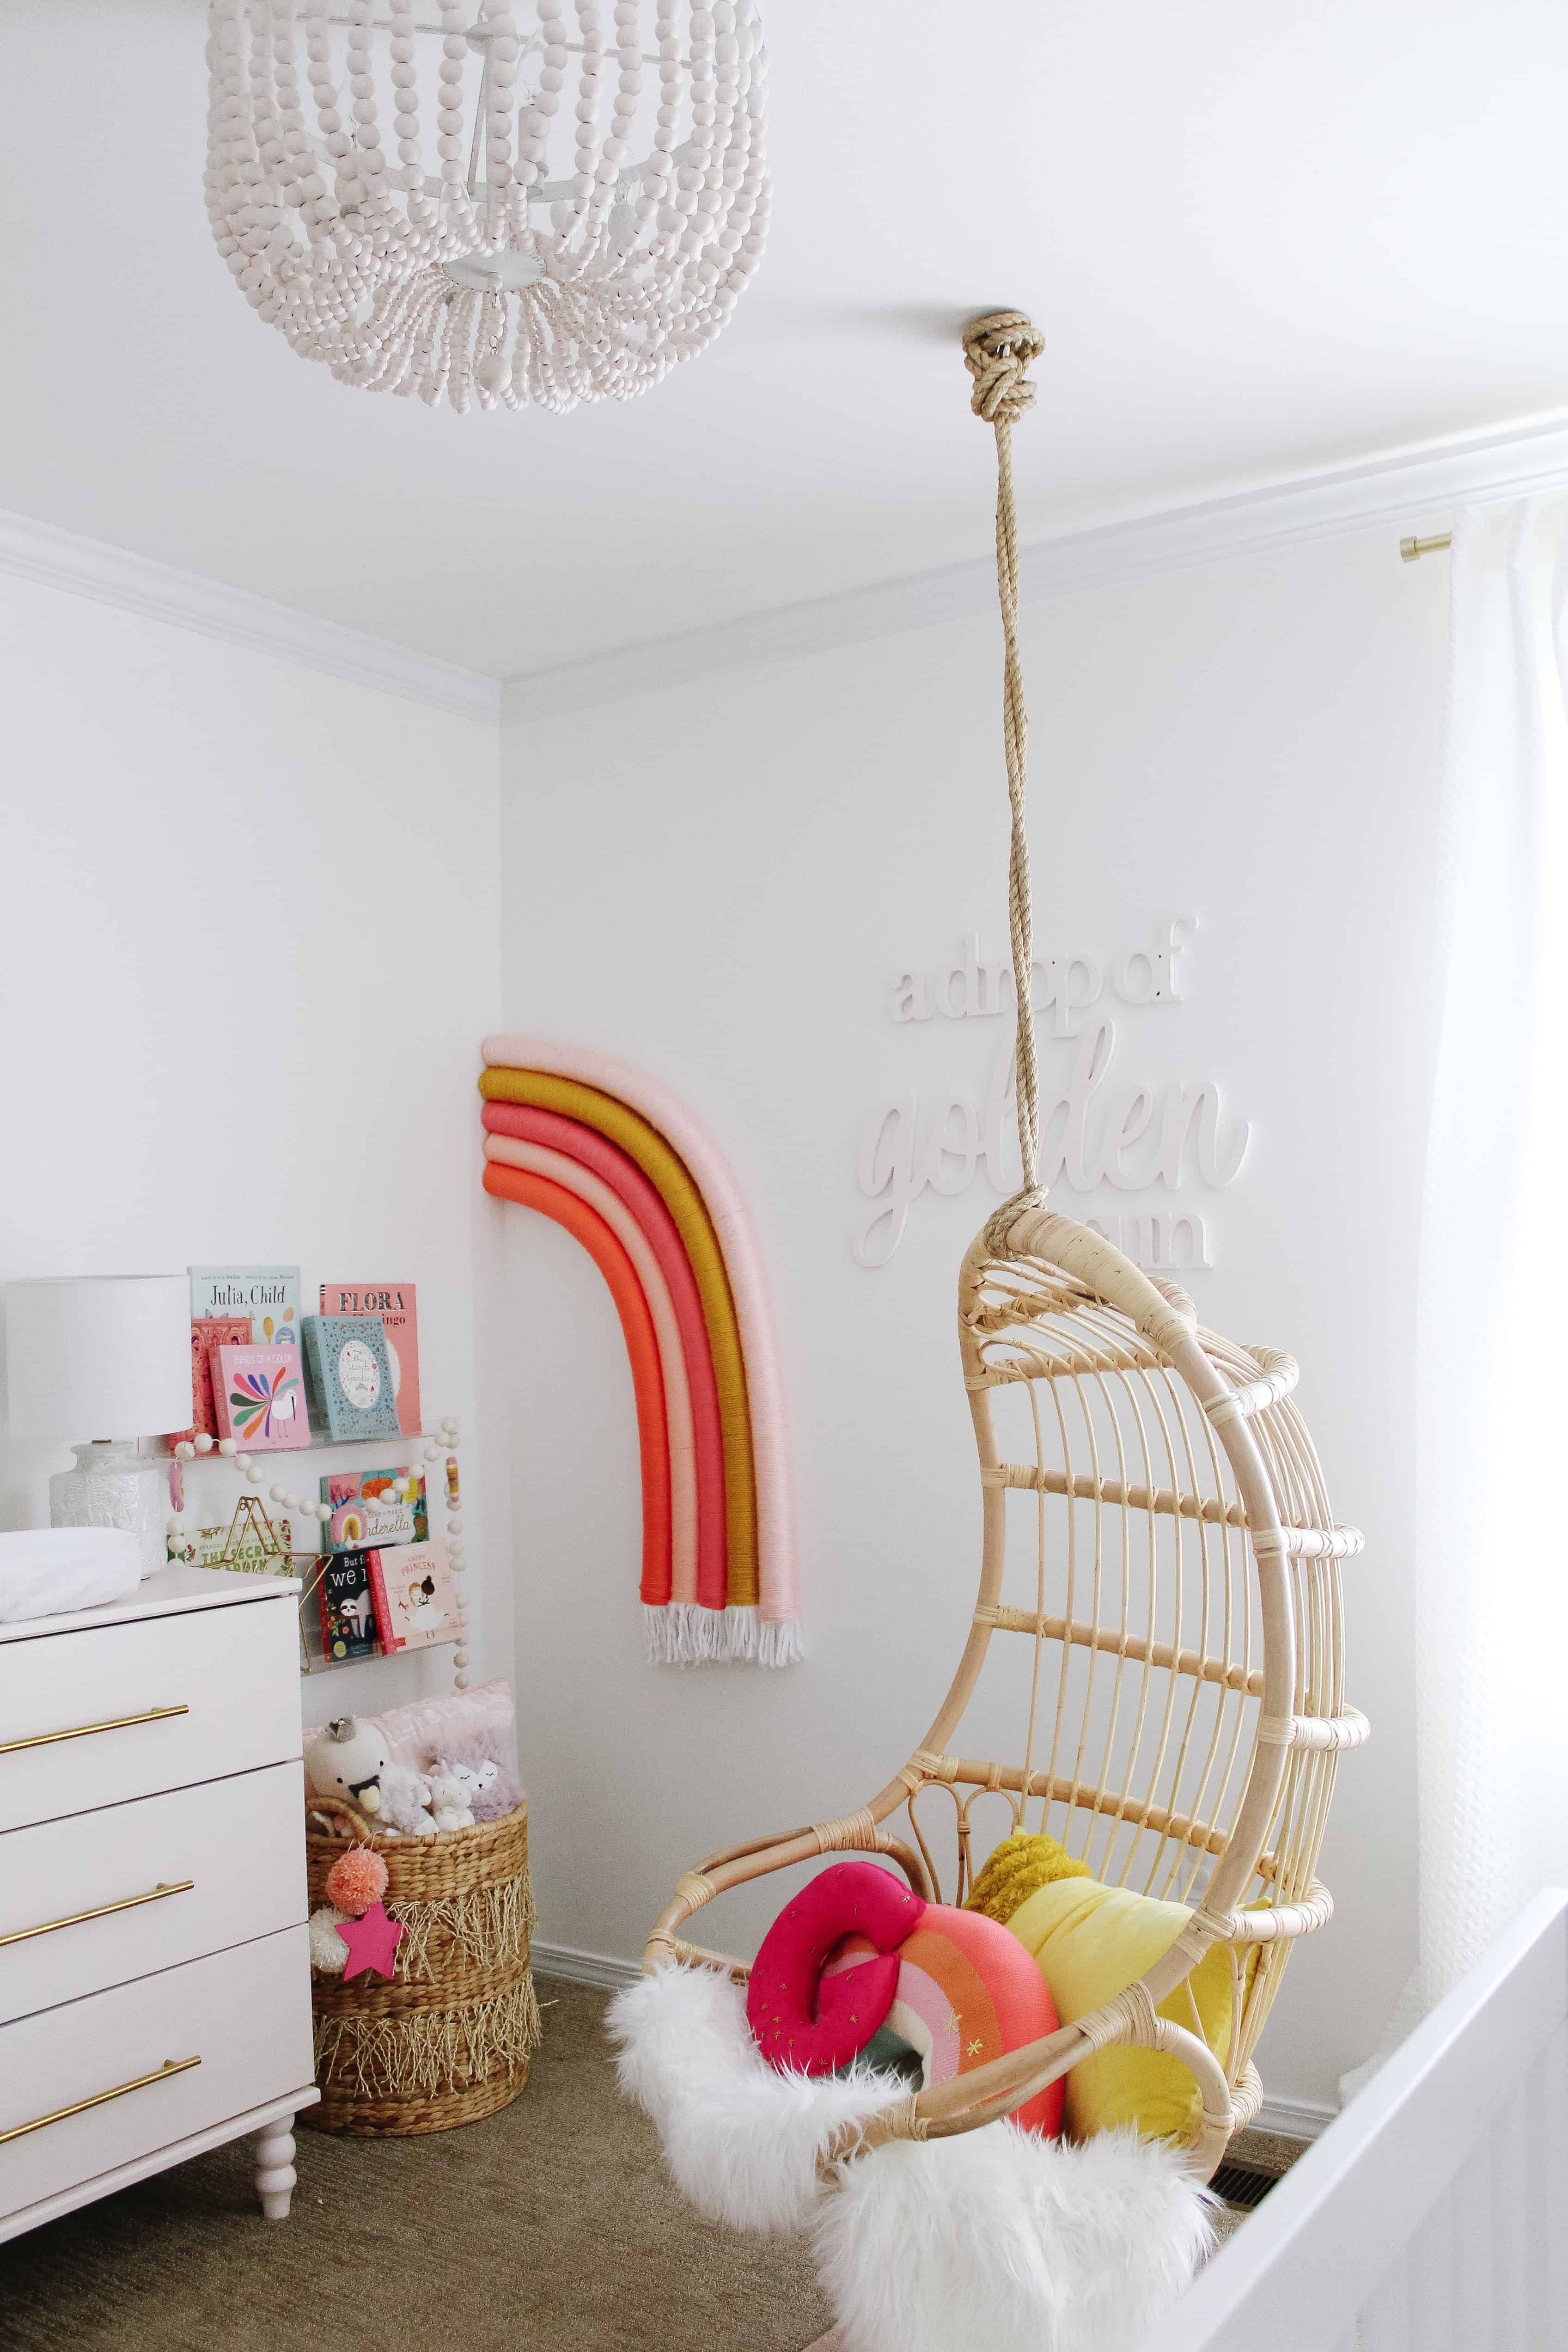 Hanging Serena and Lily Chair with Wall Rainbow